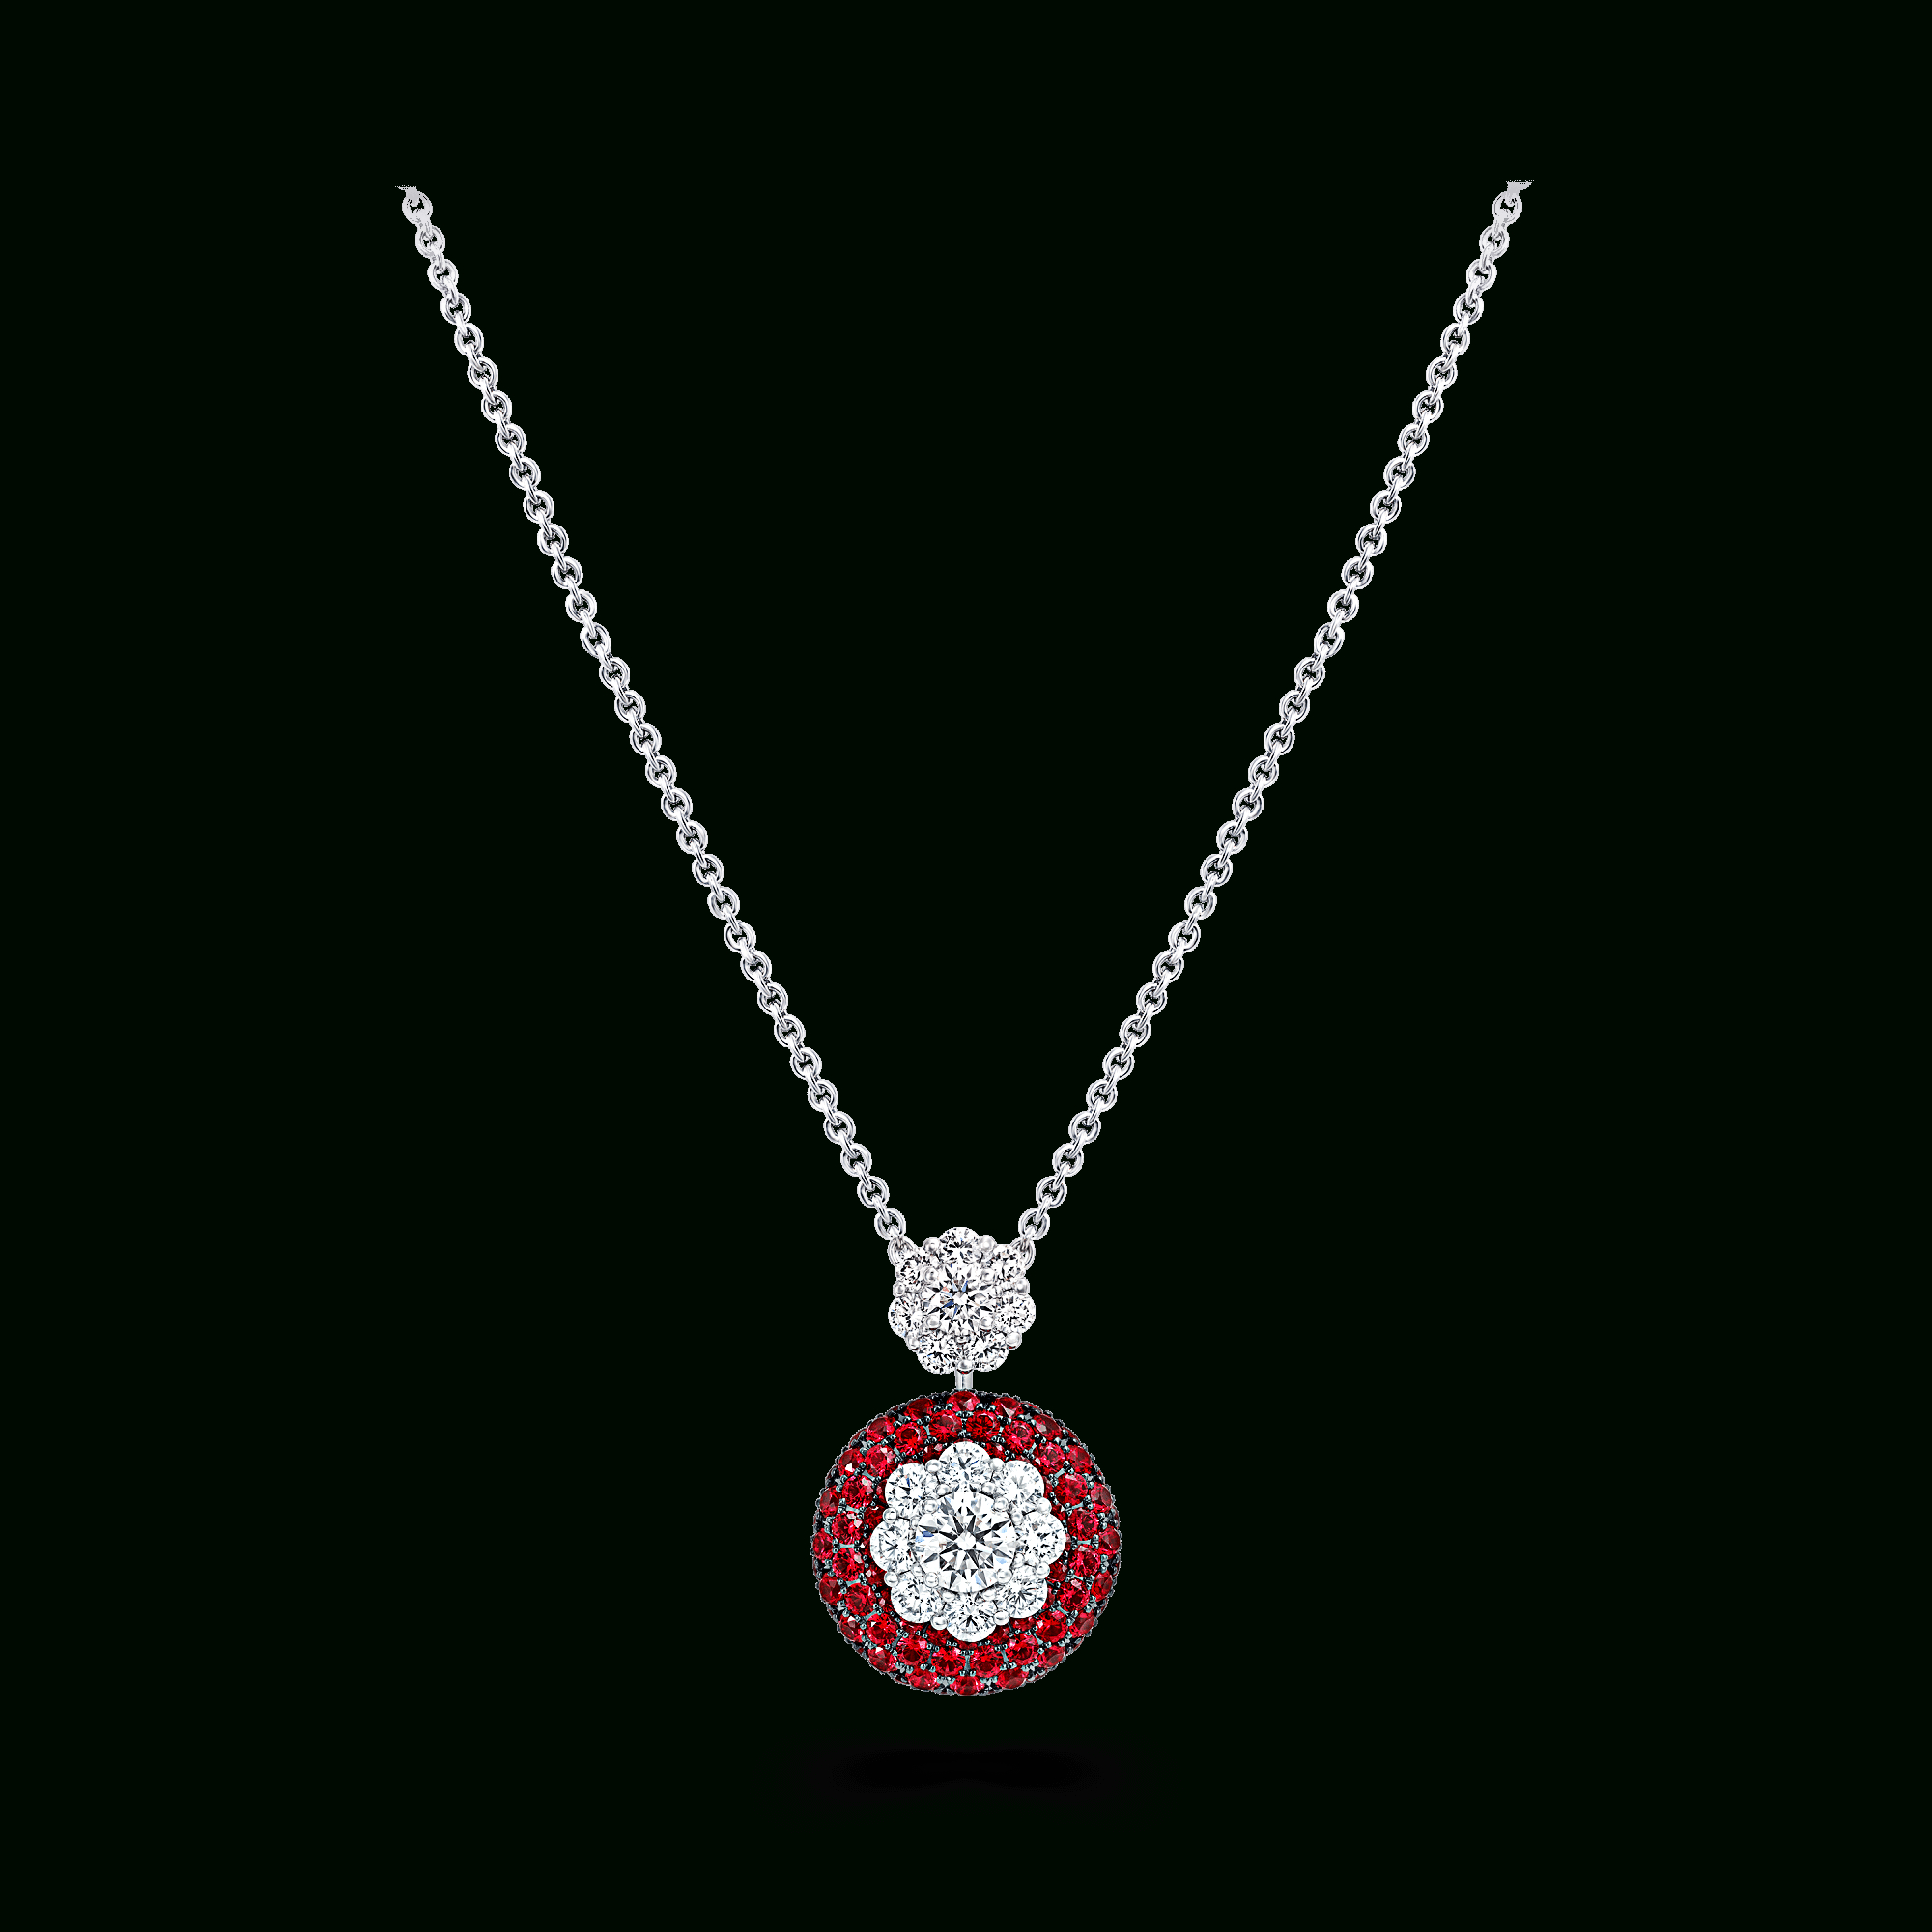 Ruby & Diamond Cluster Pendant | Bombé Halo Jewellery | Graff Throughout Newest Ruby And Diamond Cluster Necklaces (Gallery 19 of 25)